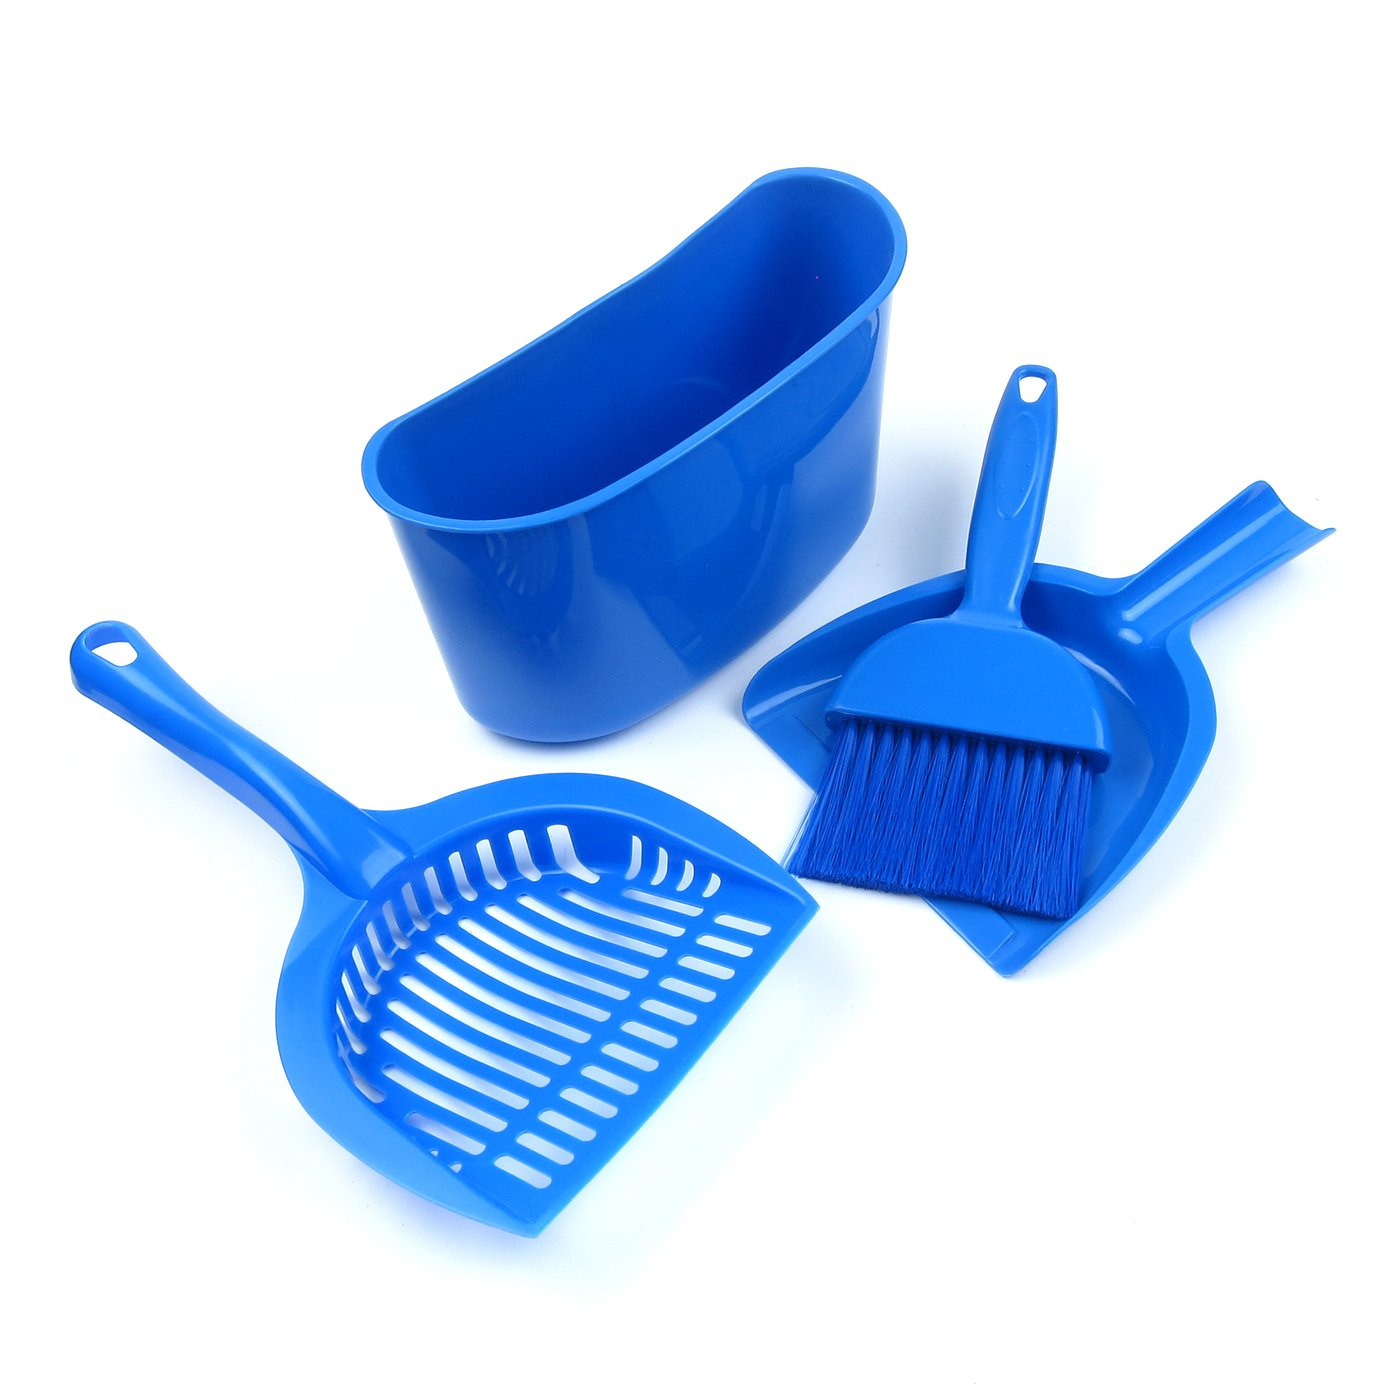 Alfie Pet by Petoga Couture - Aaron Cat or Small Animal Cleaning Brush Set - Color Blue